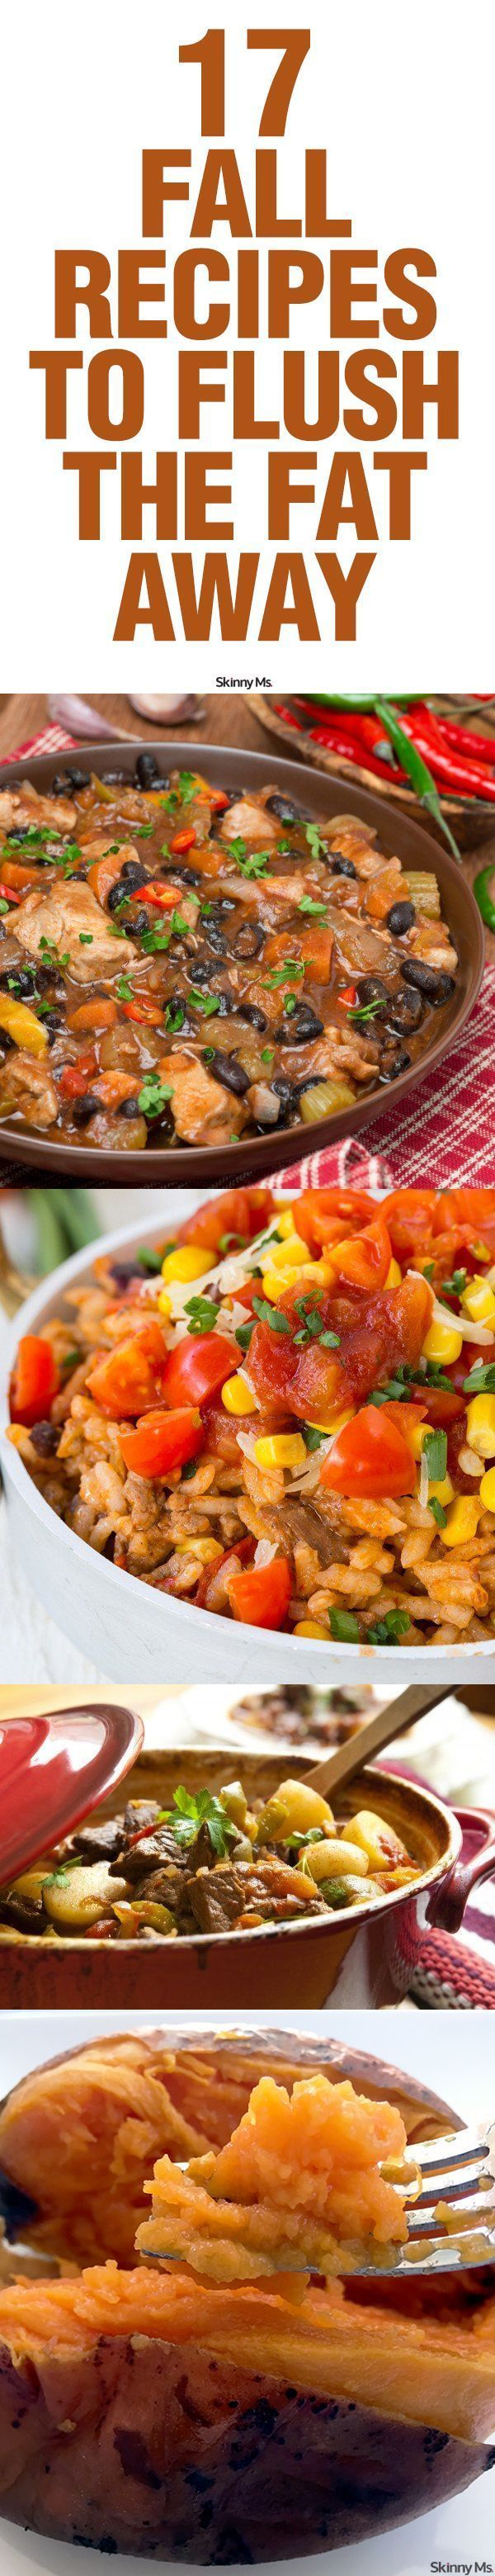 Try these 17 Fall Recipes to Flush the Fat Away to stay healthy all season long--a lot of these recipes are good, cleaning eating options for a holiday meal.